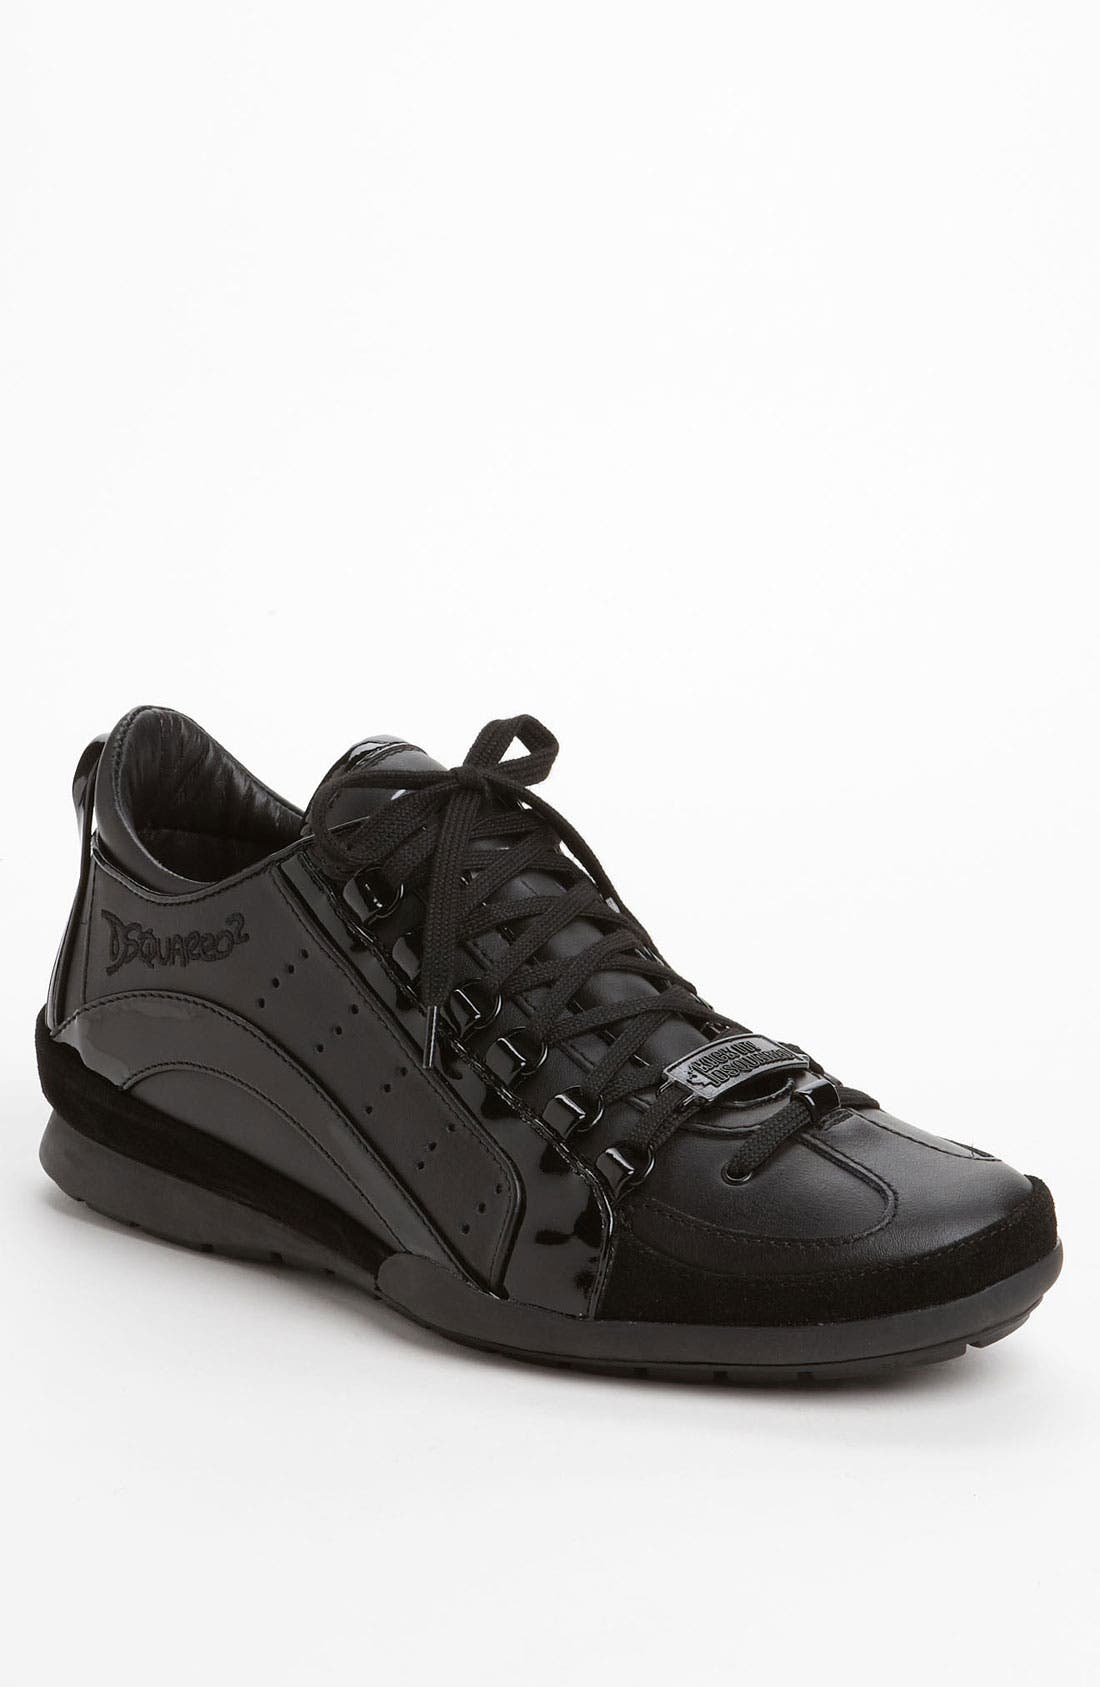 Main Image - Dsquared2 '551' Sport Sneaker